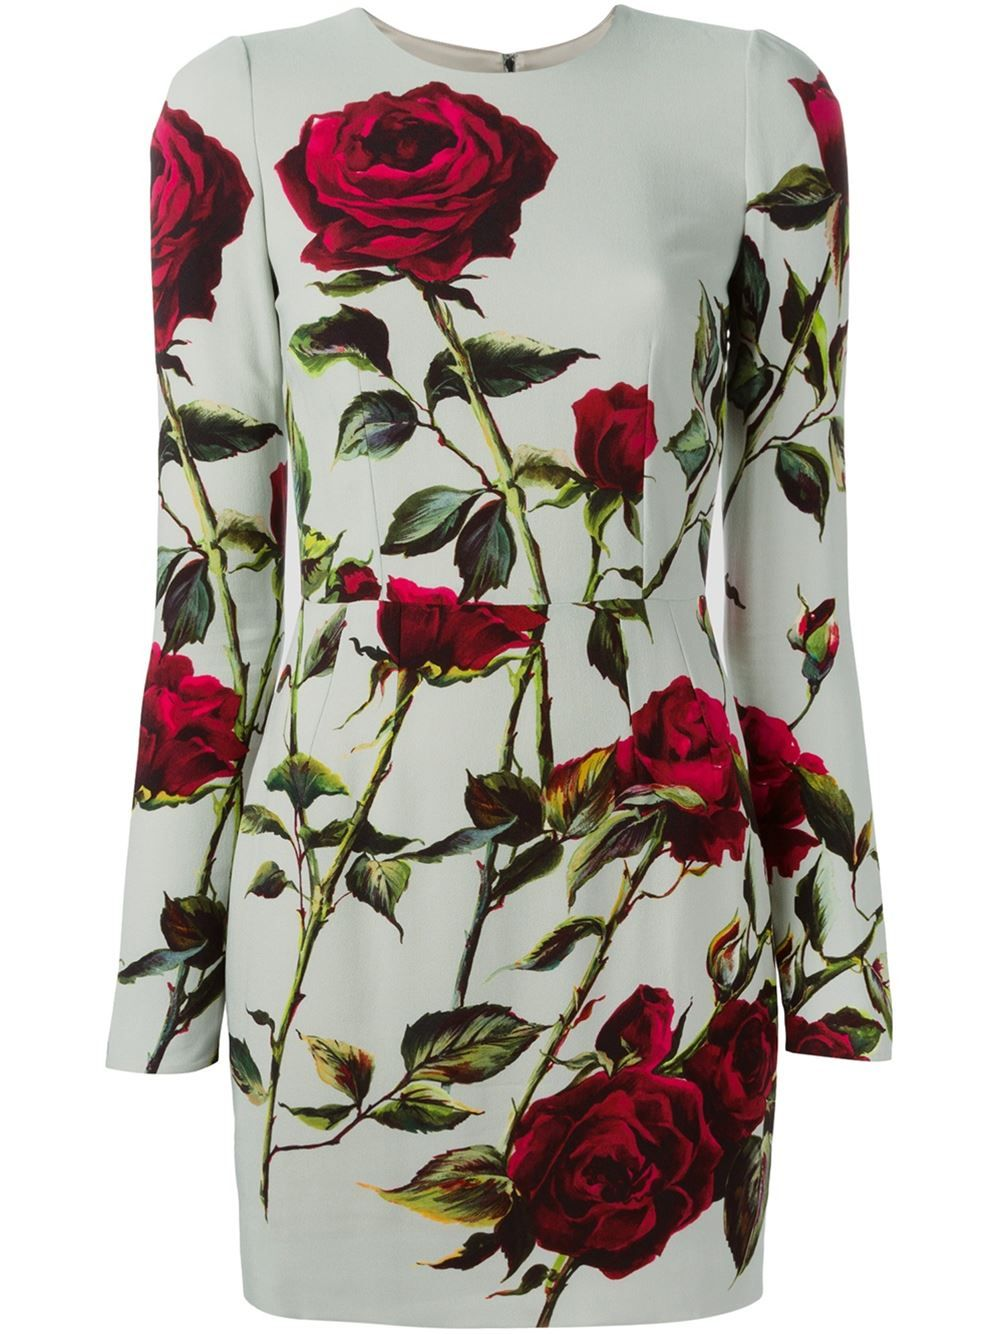 0854468b Dolce & Gabbana Rose Print Fitted Dress - Parisi - Farfetch.com ...